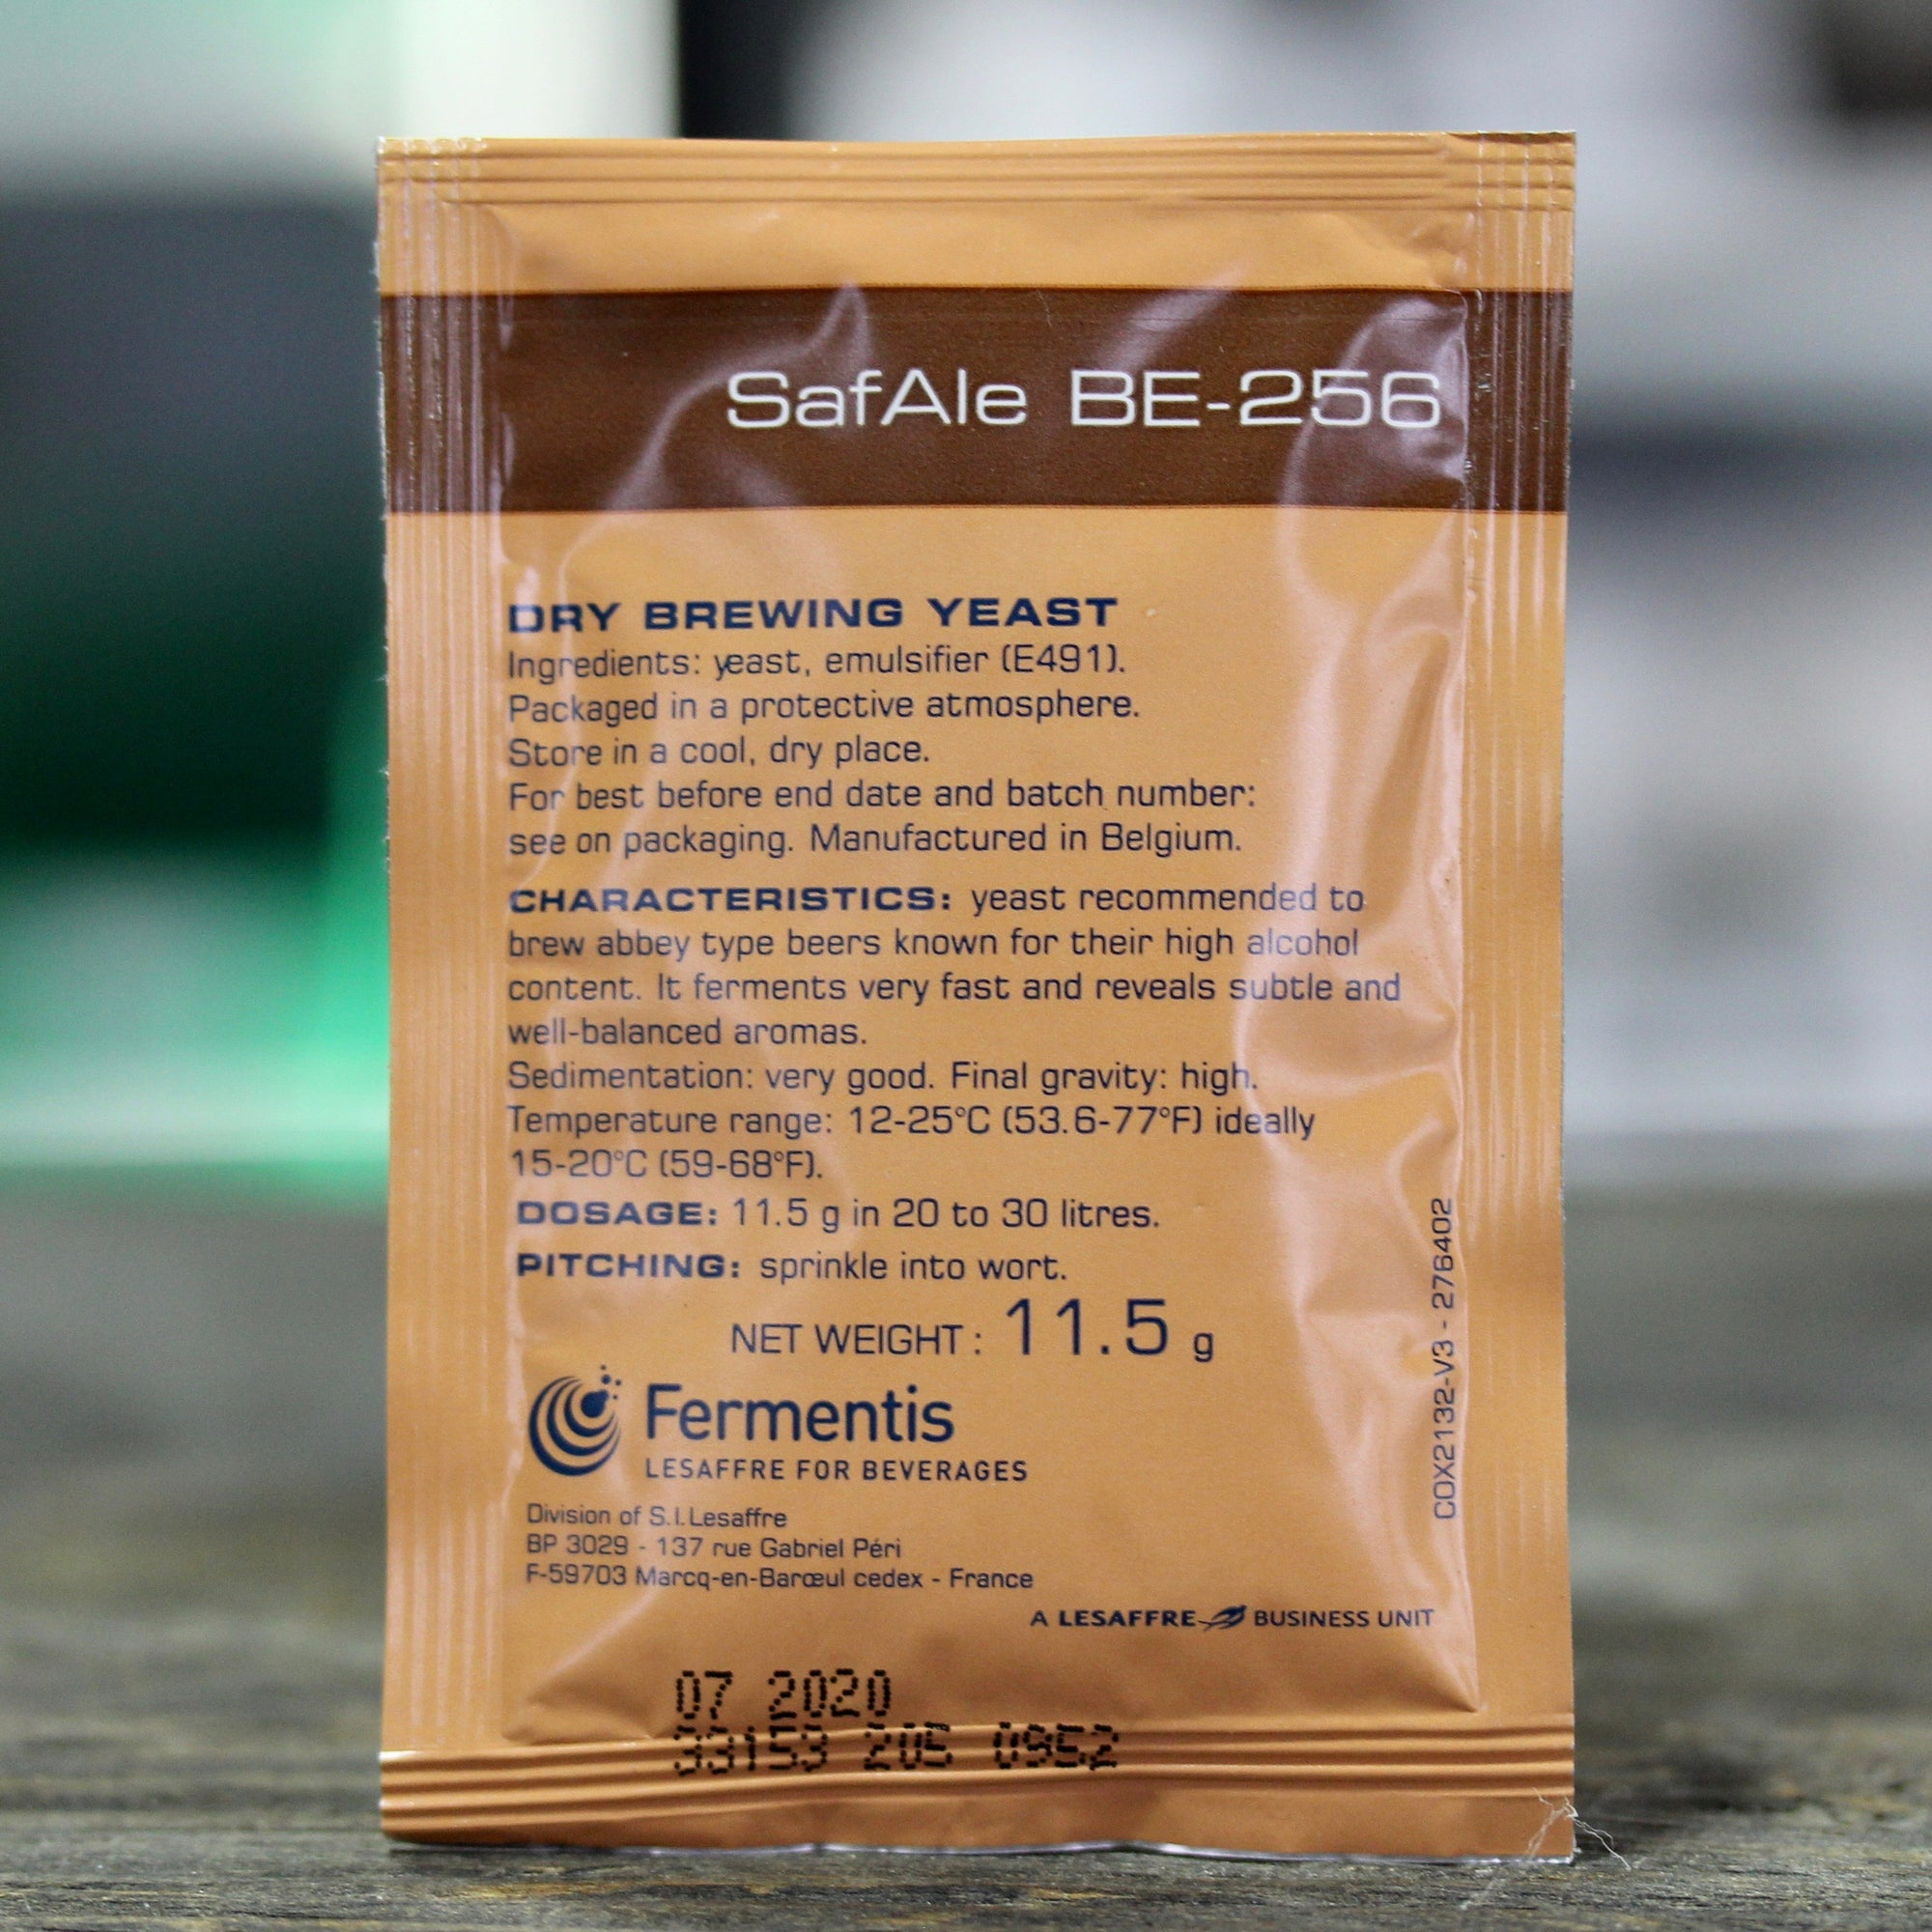 BE-256 Ale Yeast